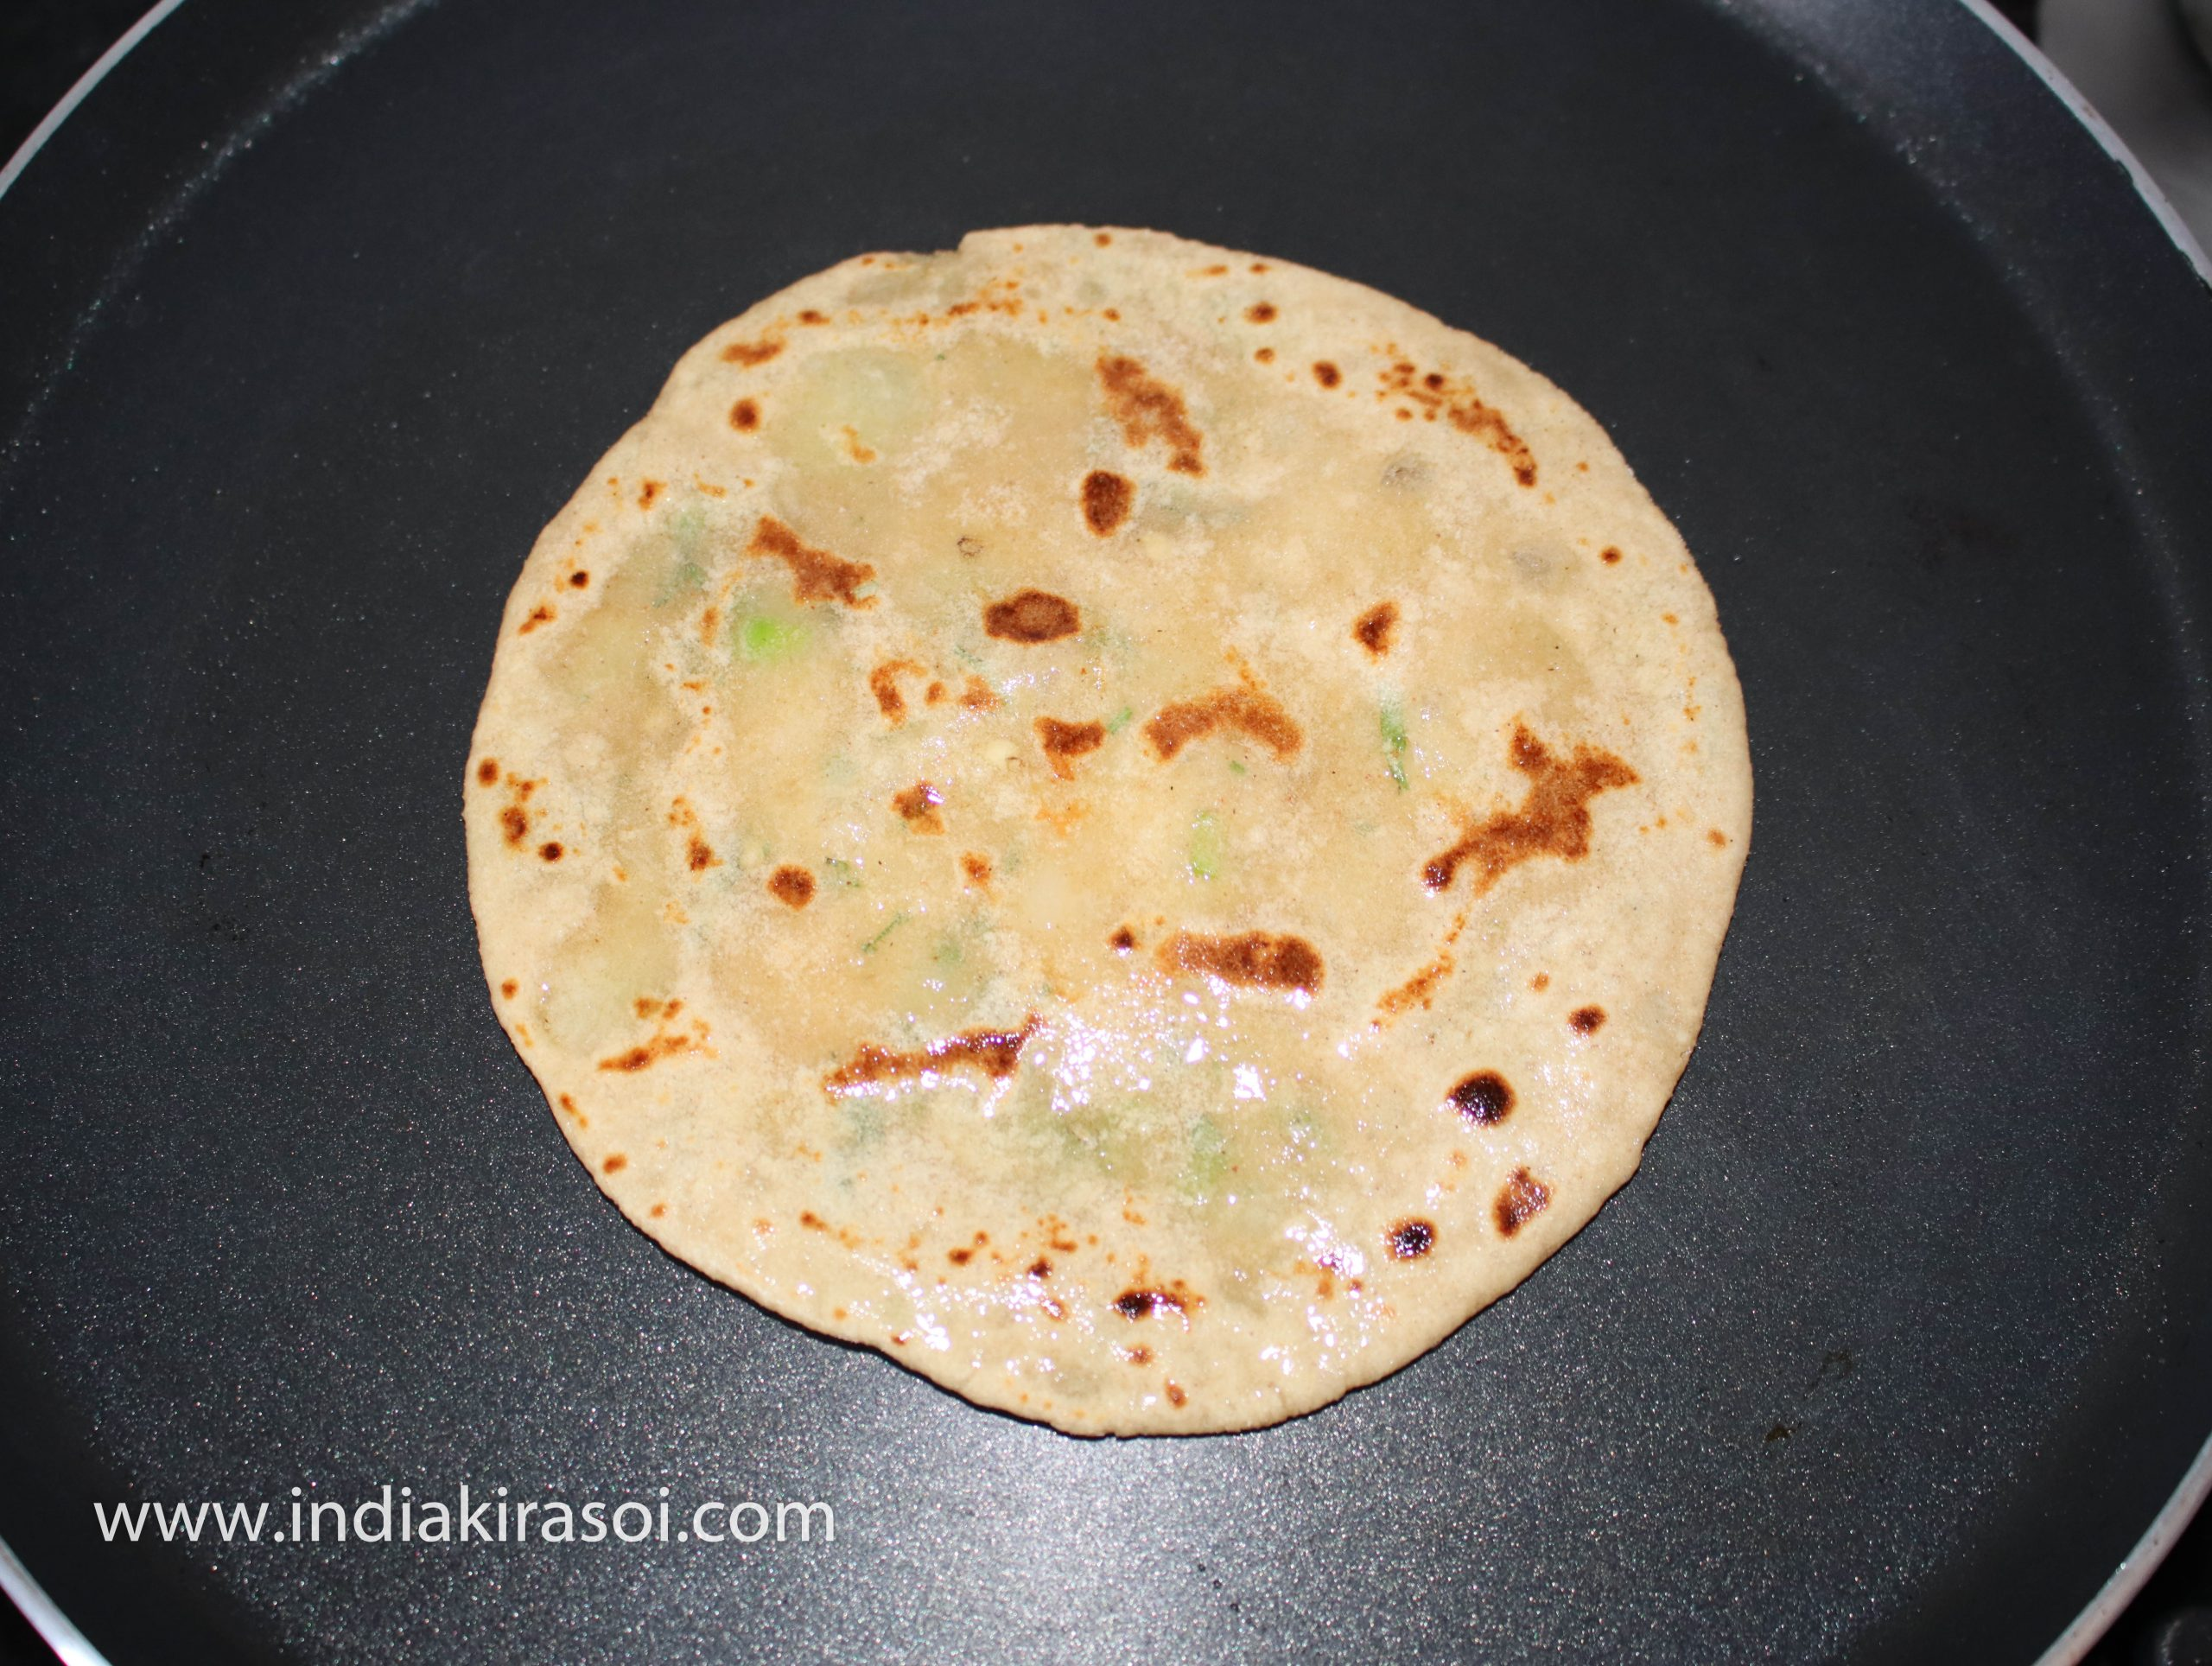 Apply the oil/ desi ghee o butter and apply on the flatbread/ paratha.